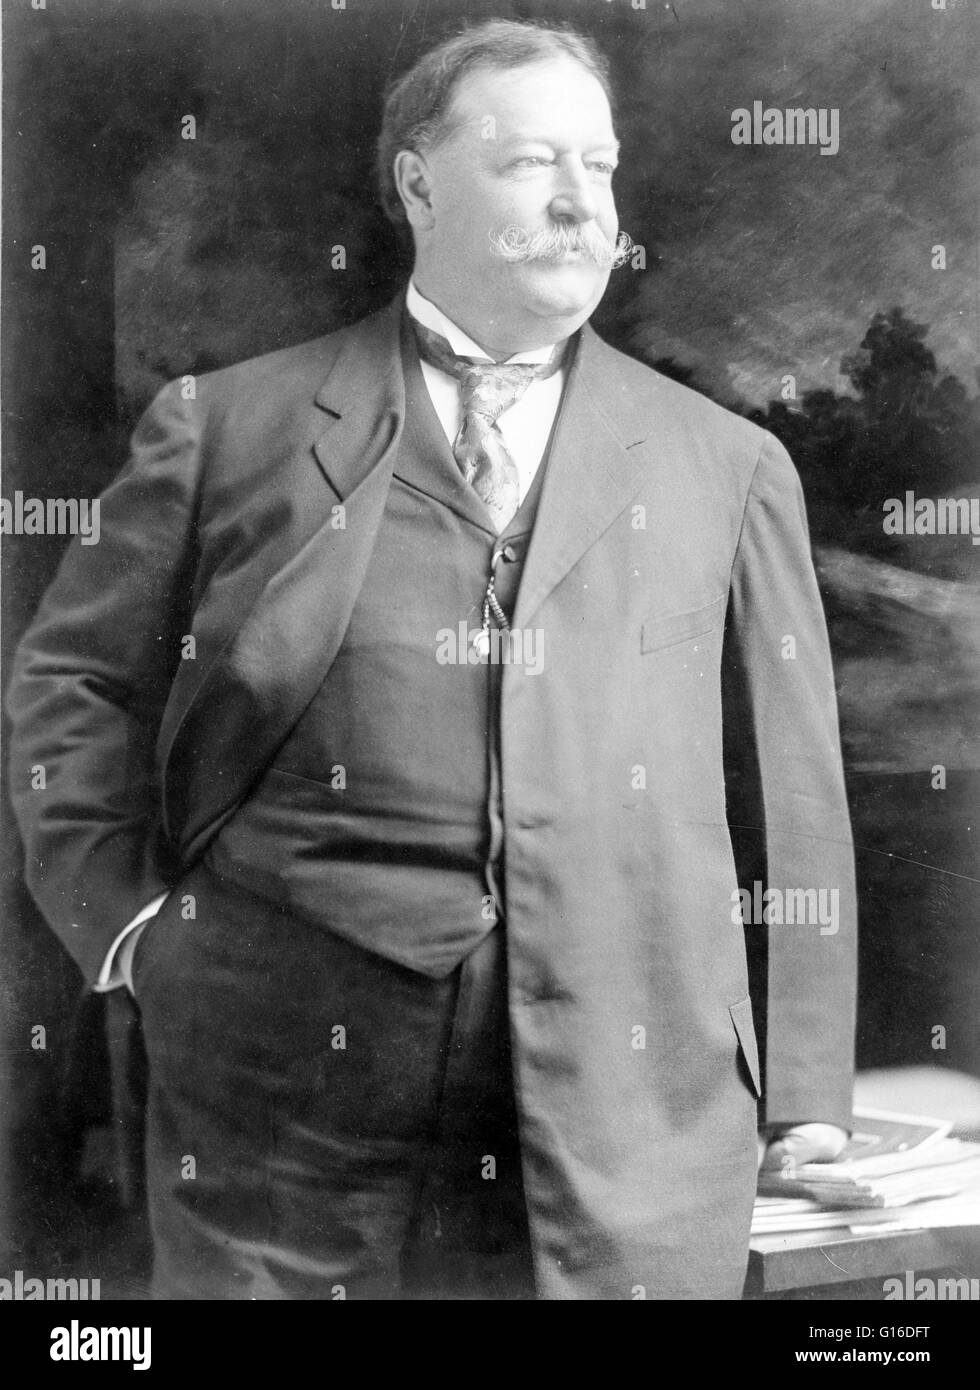 Secretary of War Taft photographed in 1907. William Howard Taft (September 15, 1857 - March 8, 1930) was the 27th - Stock Image